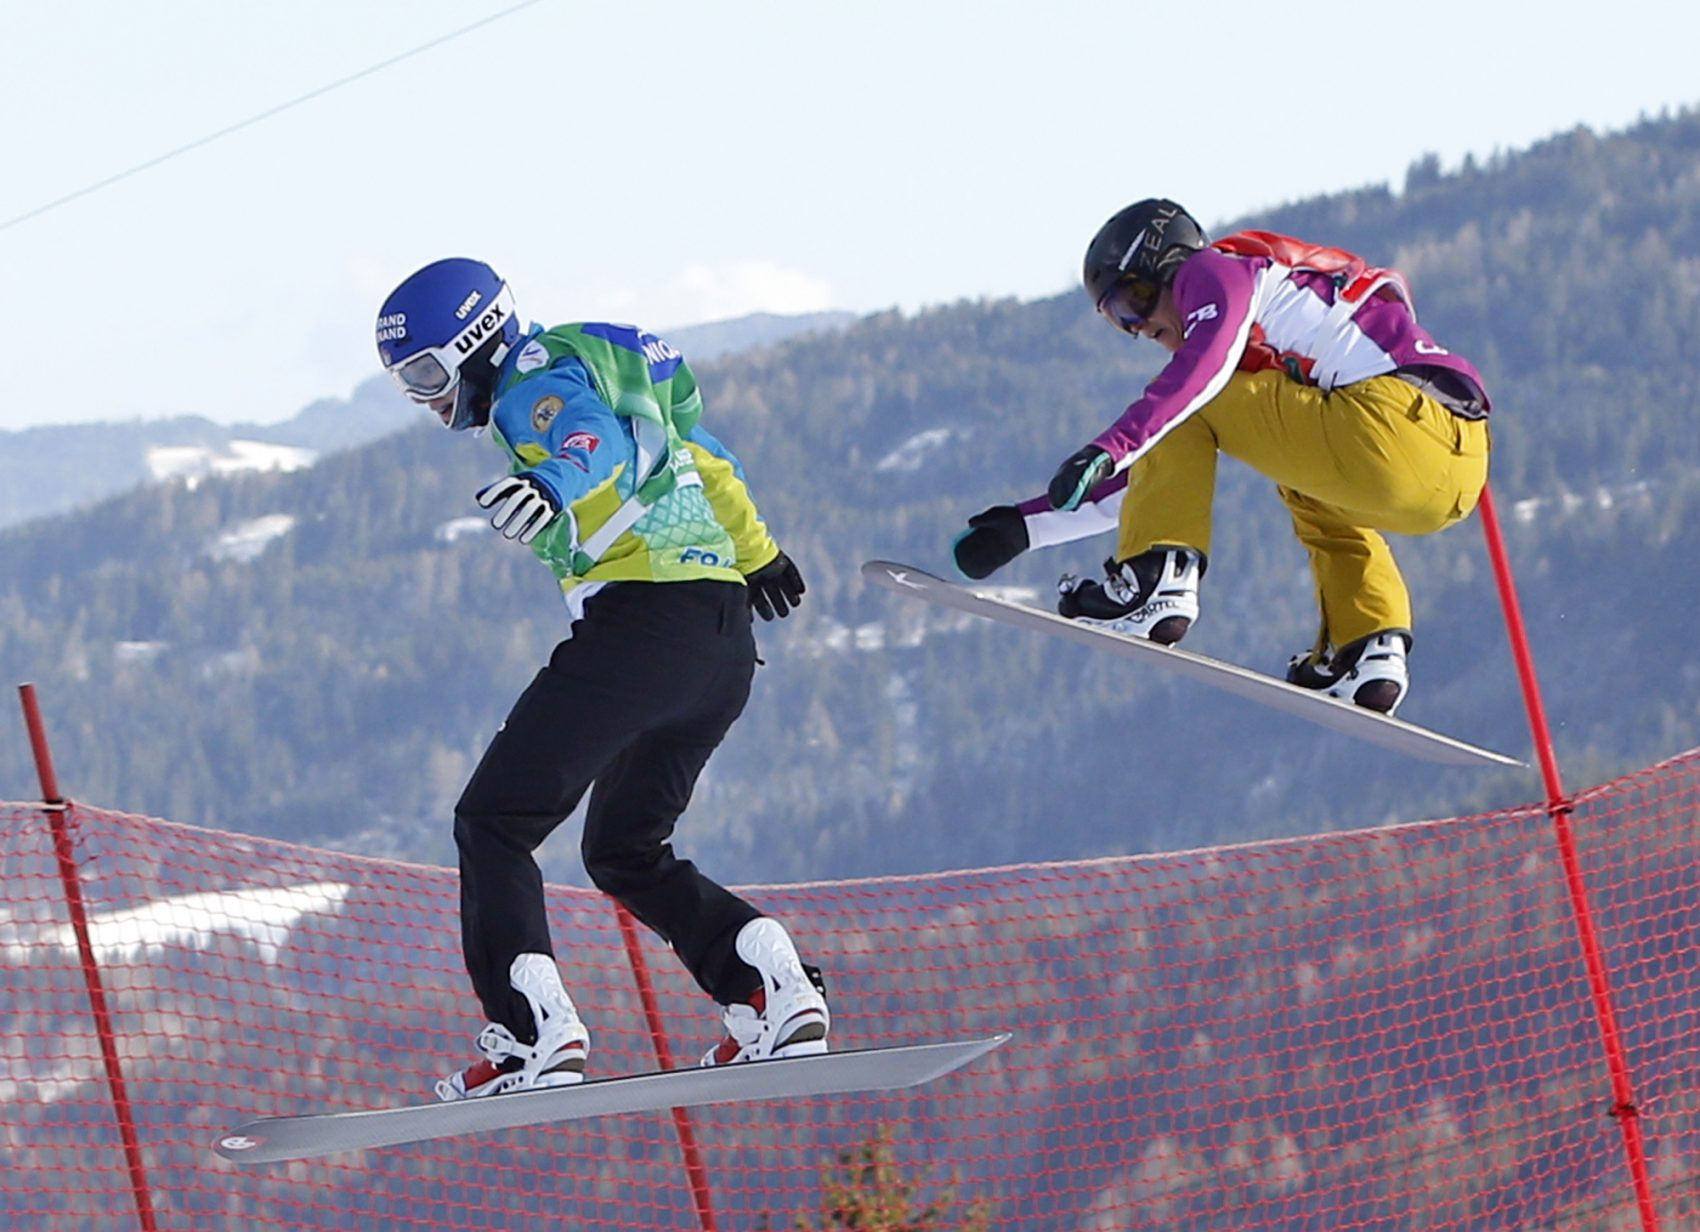 Lindsey Jacobellis, right, from the U.S. competes to win the snowboard cross event at the Freestyle Ski and Snowboard World Championships in Kreischberg, Austria, Friday, Jan. 16, 2015. (Darko Bandic/AP)